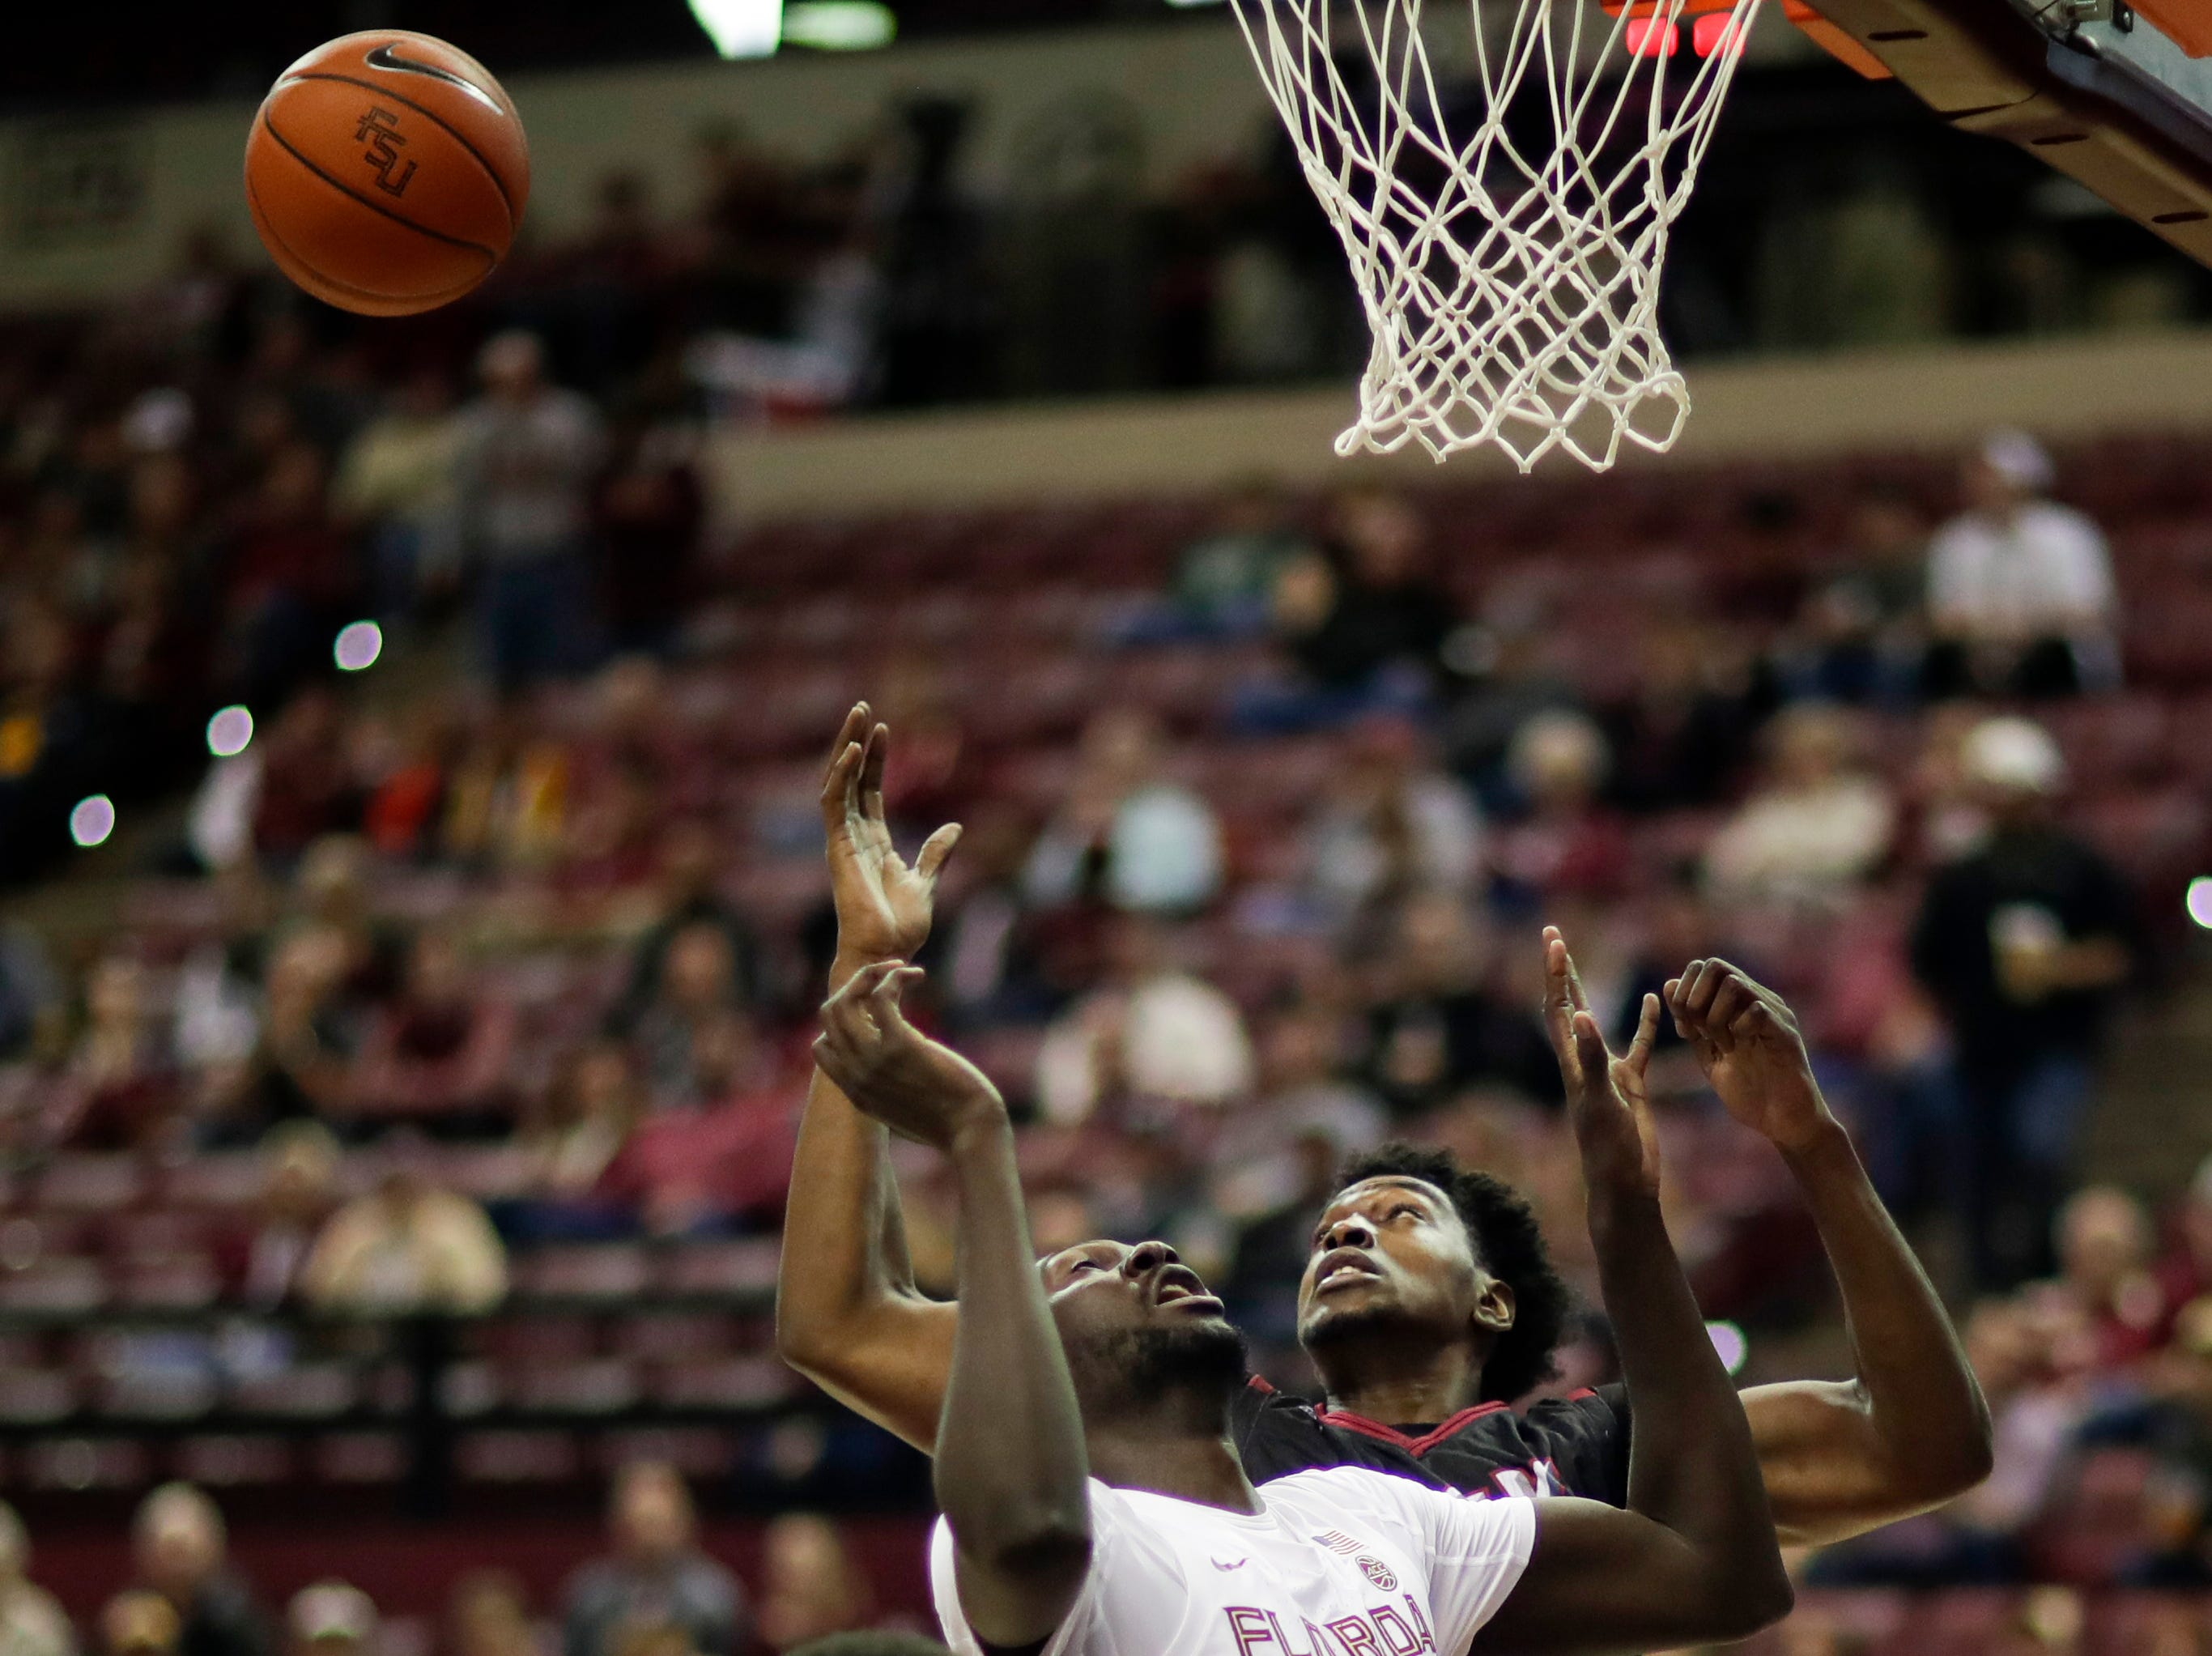 Florida State Seminoles center Christ Koumadje (21) and Florida State Seminoles guard M.J. Walker (23) watch as a rebound gets away from them during a game between FSU and Troy University at Donald L. Tucker Civic Center Monday, Dec. 3, 2018.